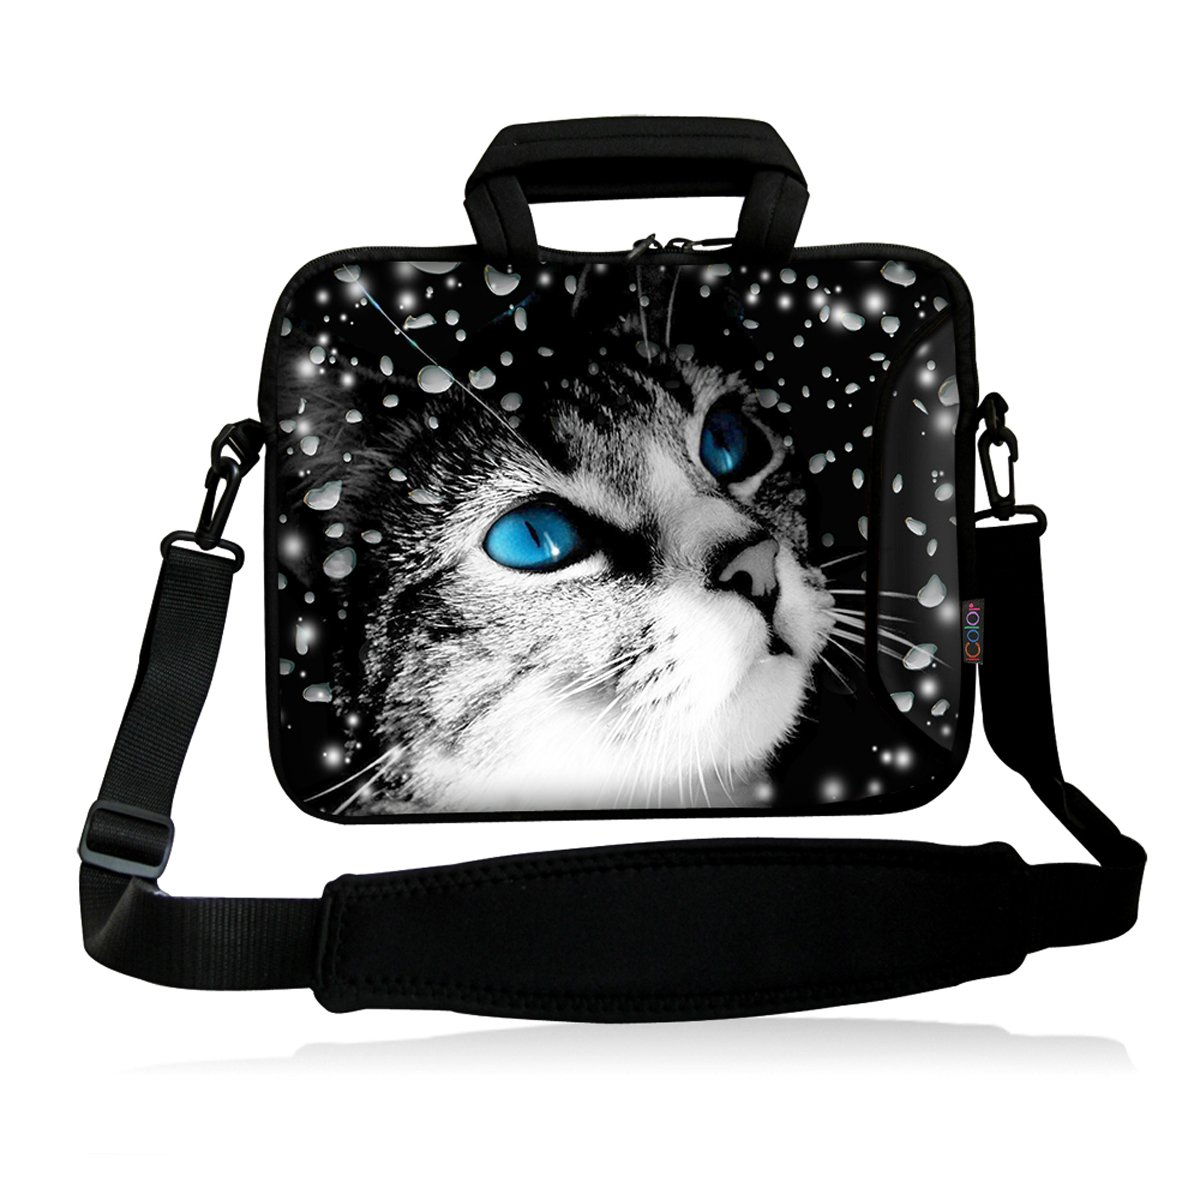 ICOLOR Neoprene Laptop Shoulder Bag with Strap Waterproof Shoulder Case Pouch School Office Work Case Bag with Multi Pictures for Size 13 inch 13.3 Pro/HP/Acer/Dell/Asus/Samsung Notebook Owls